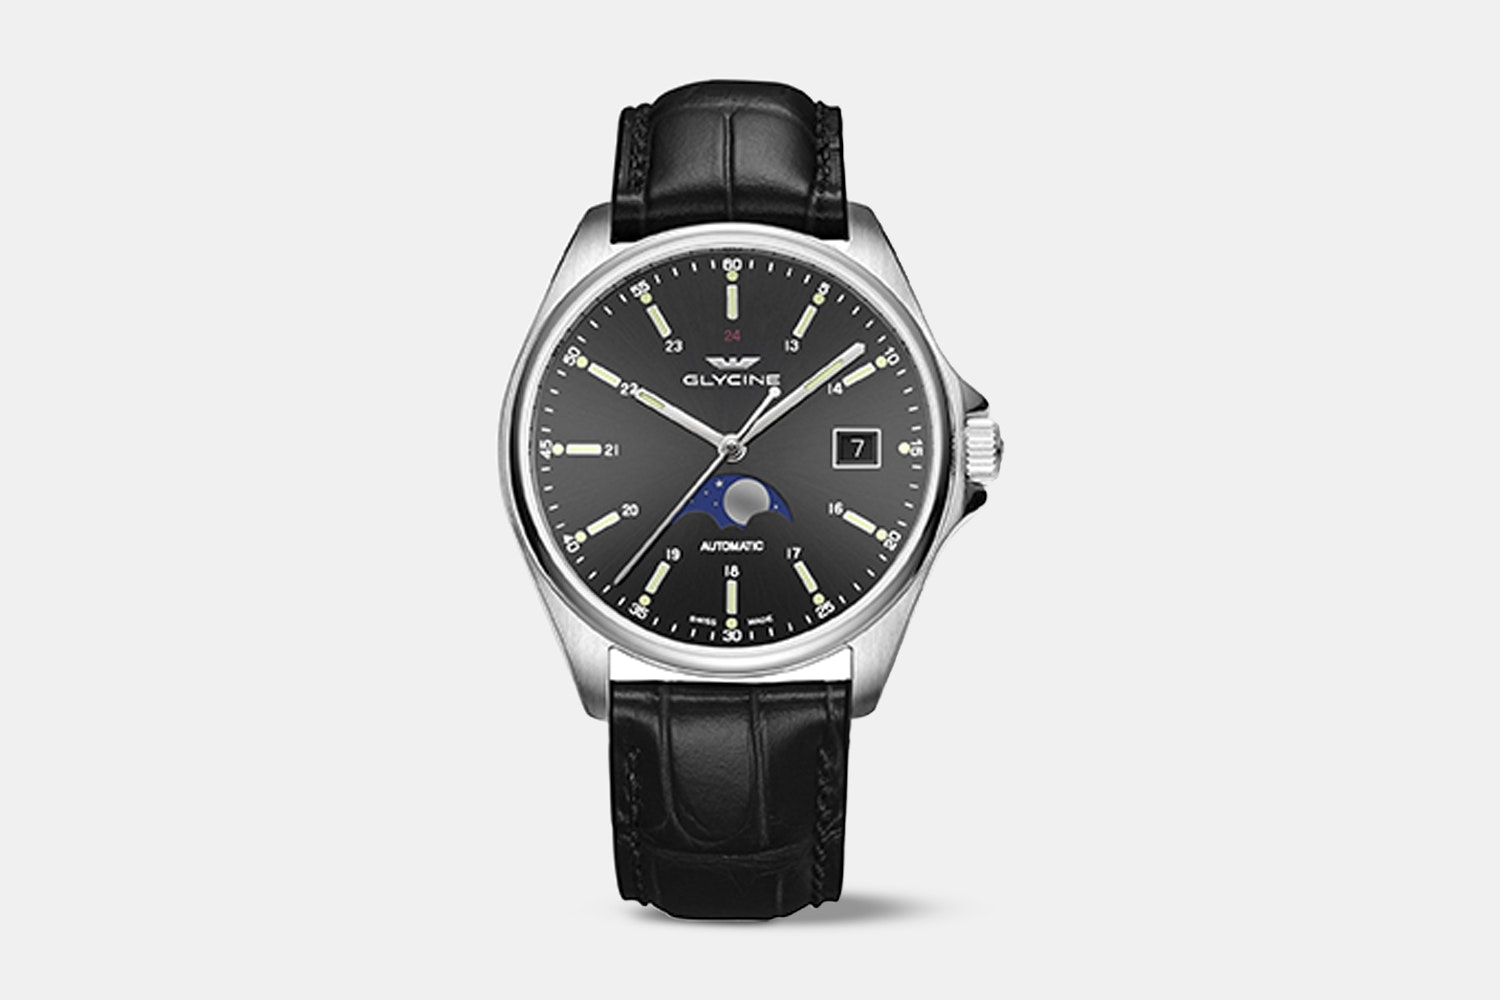 Glycine Combat 6 Classic Moonphase Automatic Watch